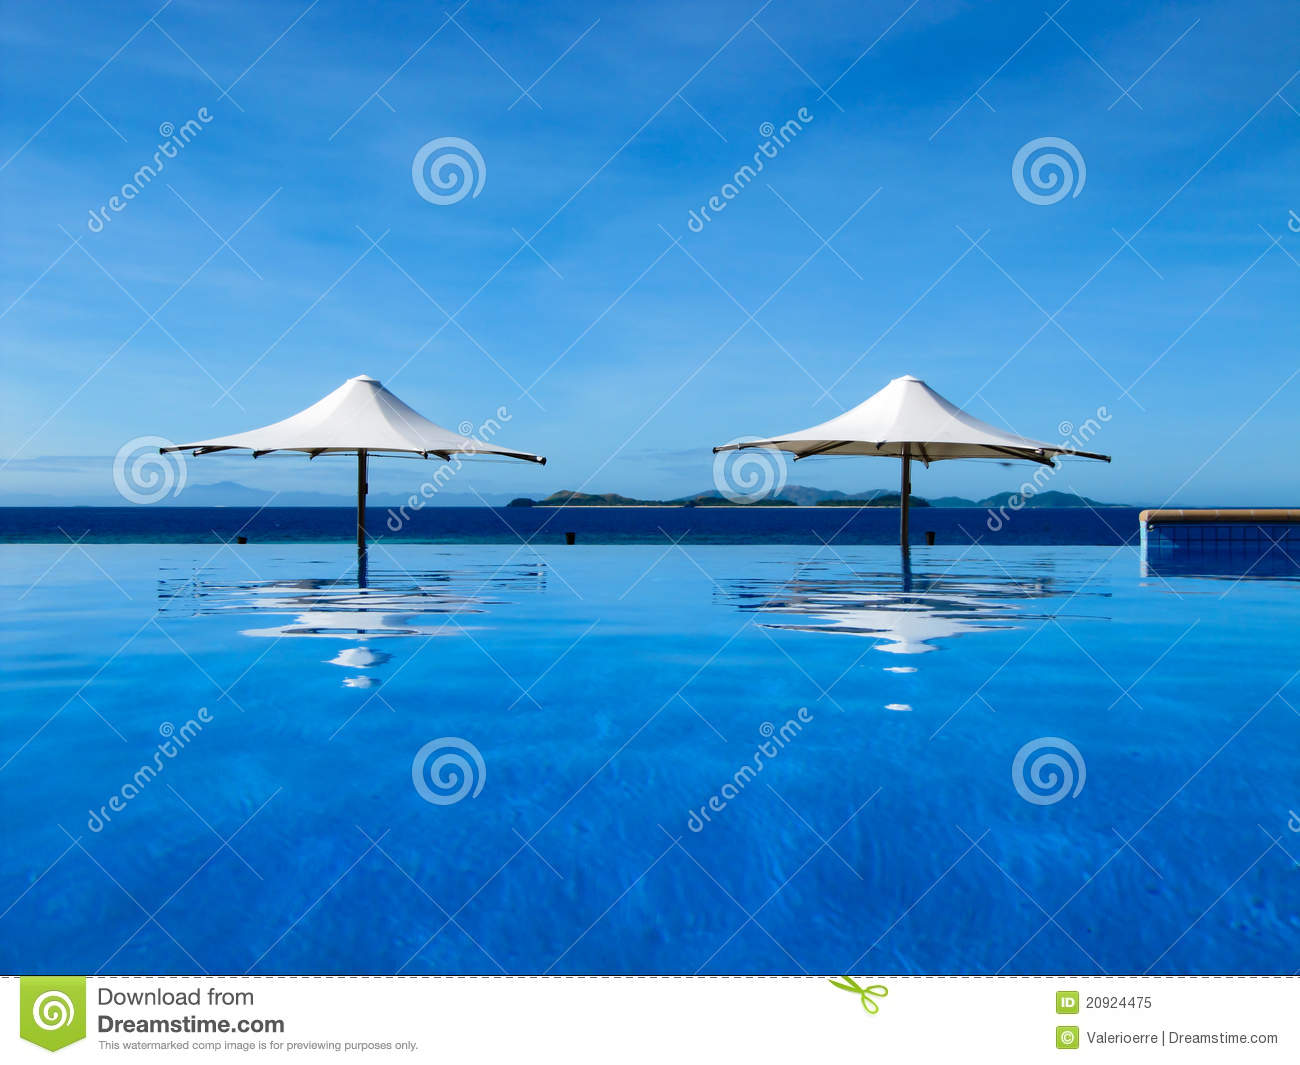 Umbrella between an infinity pool and the sea